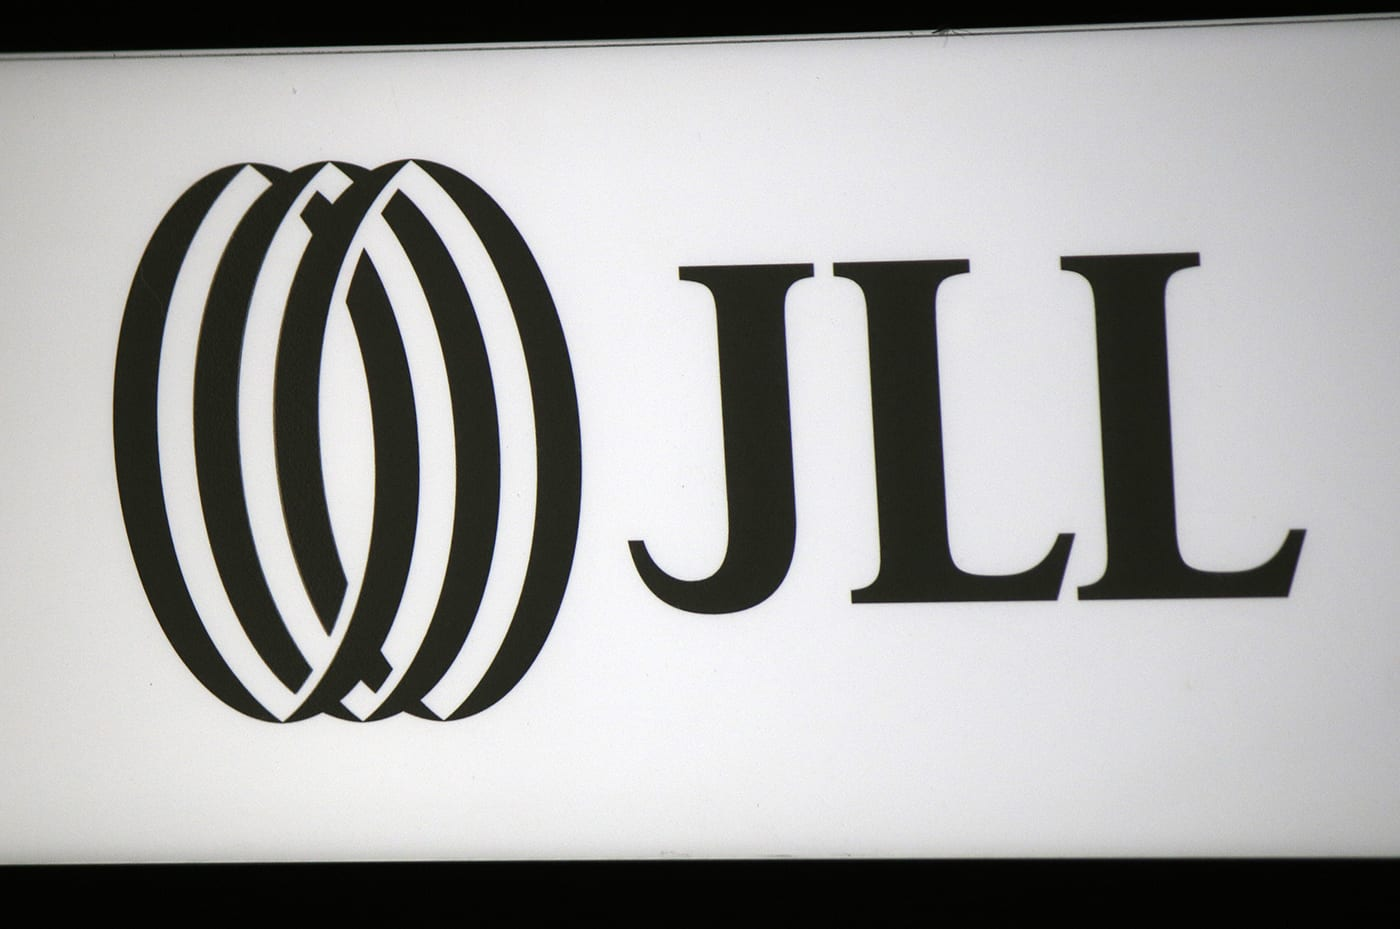 JLL logo sign in black and white